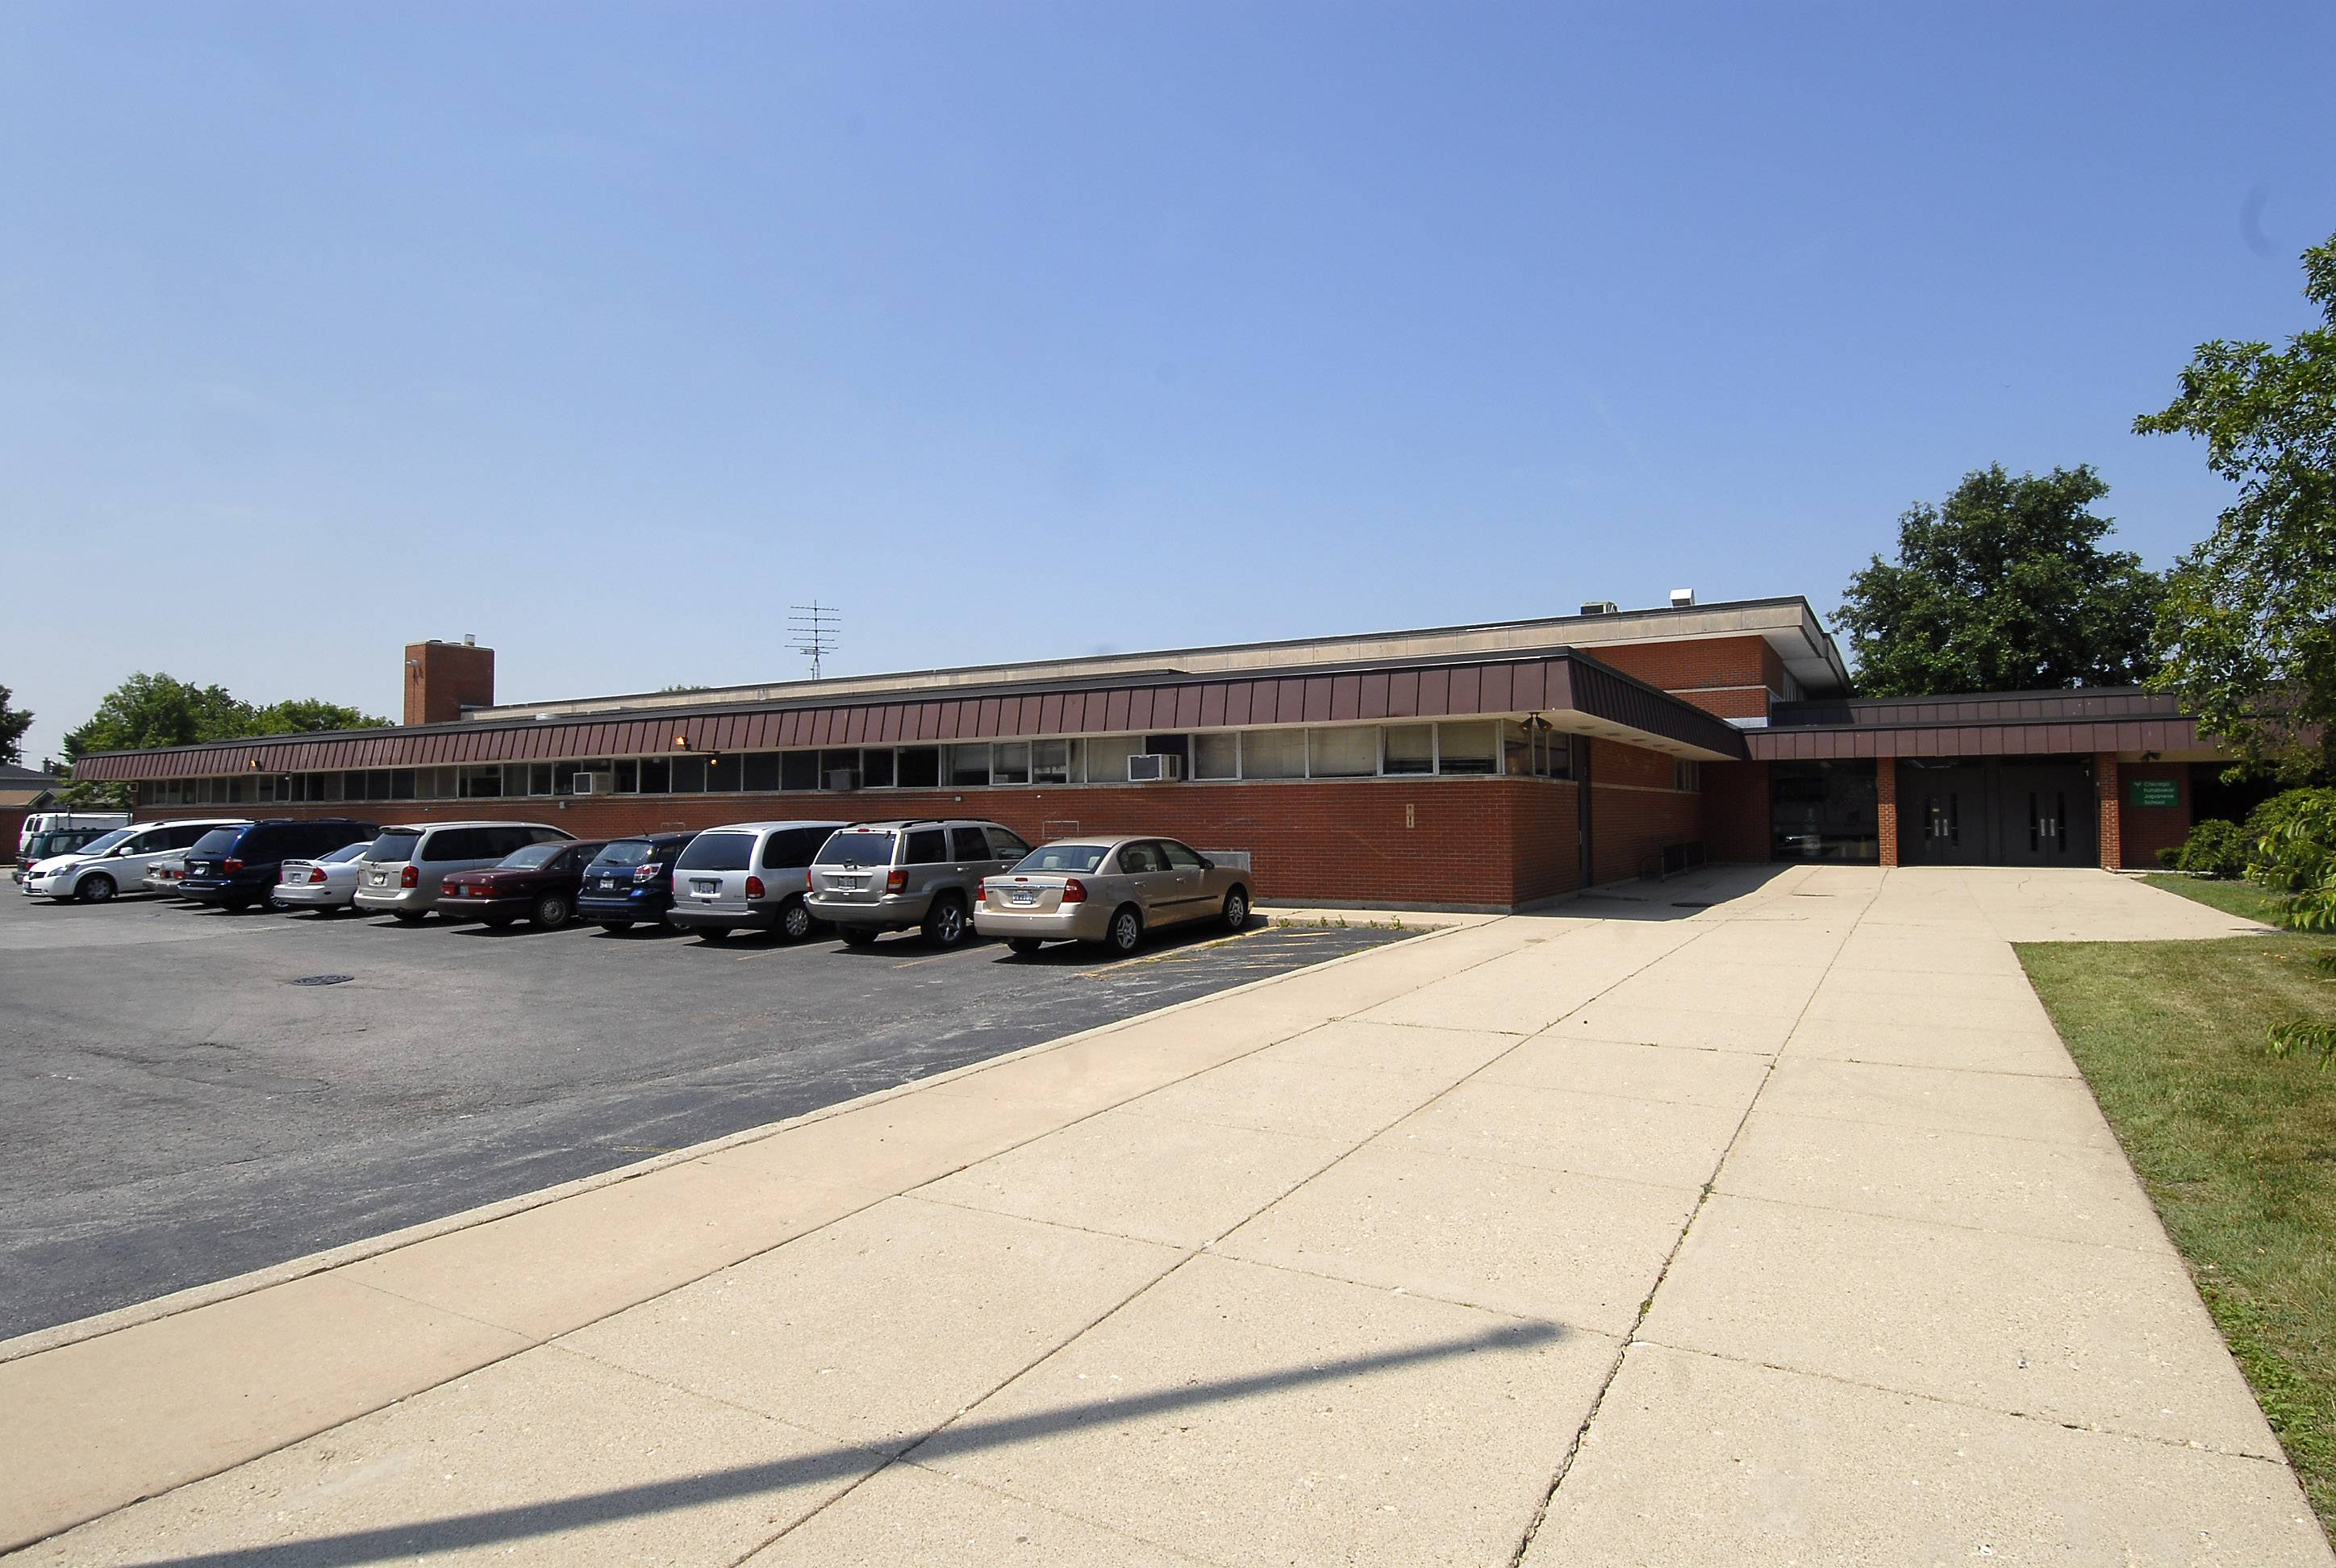 Chicago Futabakai Japanese School has been located at 2550 N. Arlington Heights Road in Arlington Heights since 1998. School leaders are seeking to extend a lease for the space.